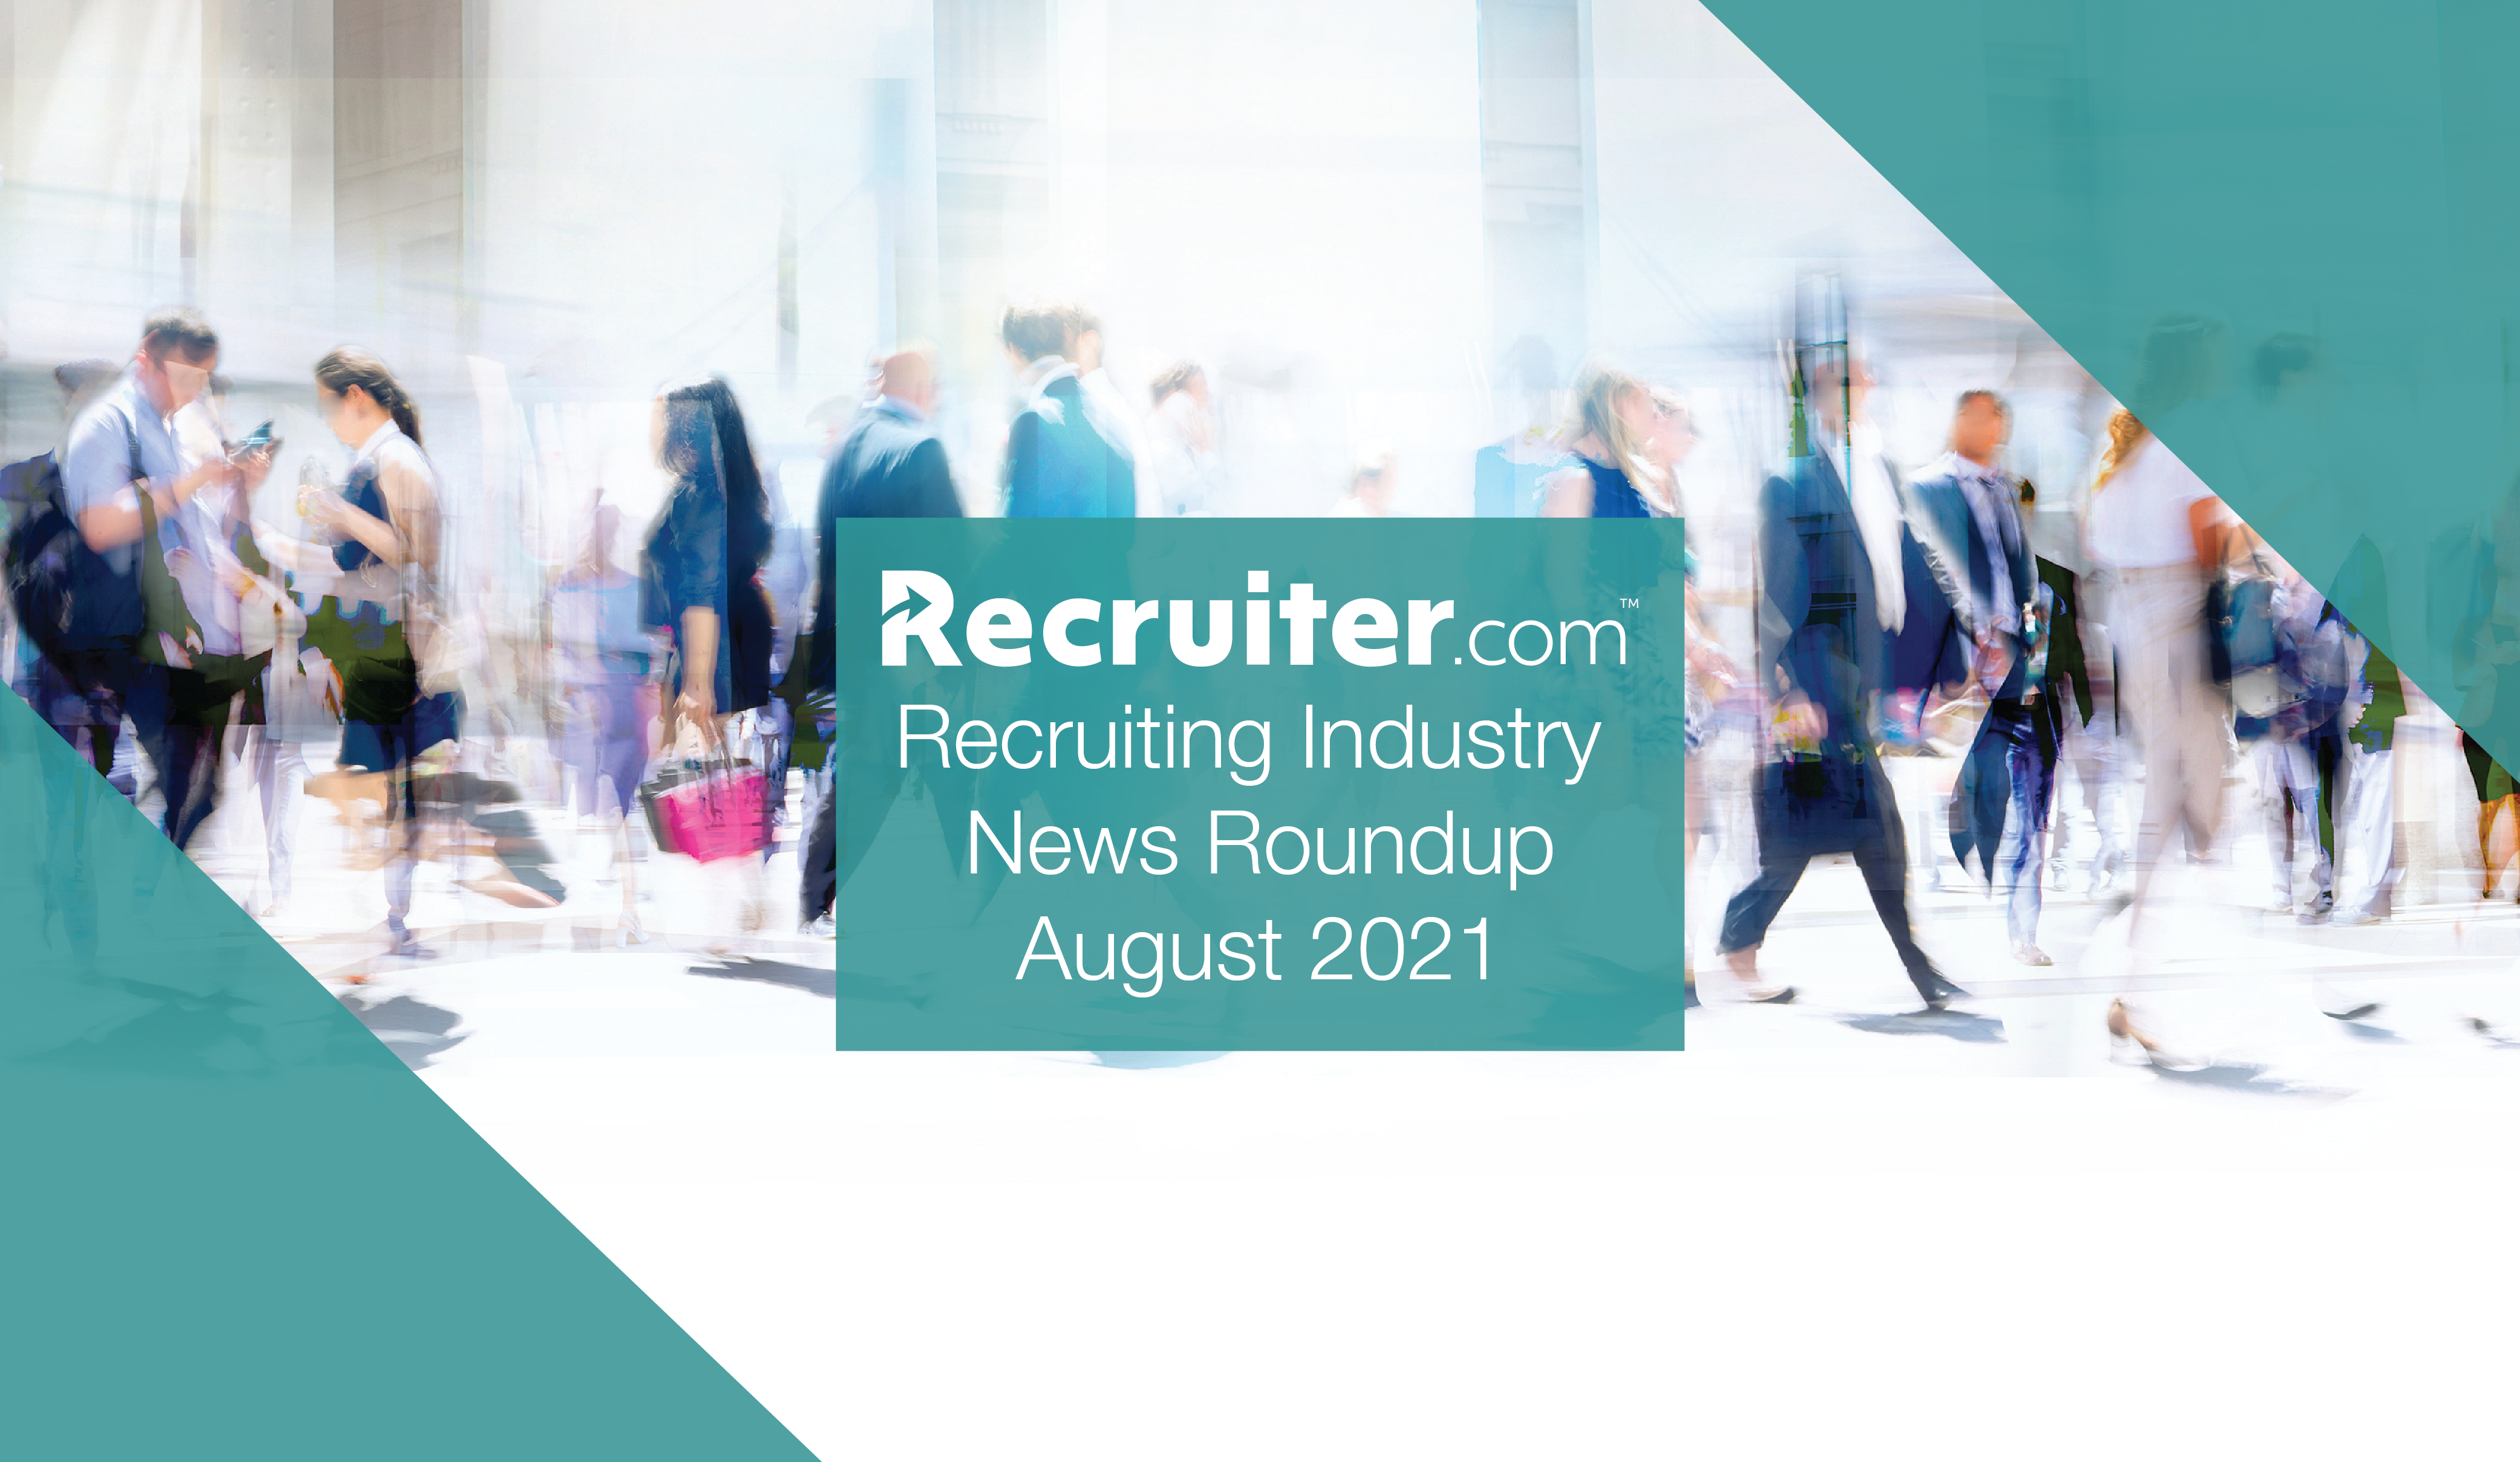 Recruiting Industry News Roundup August 2021